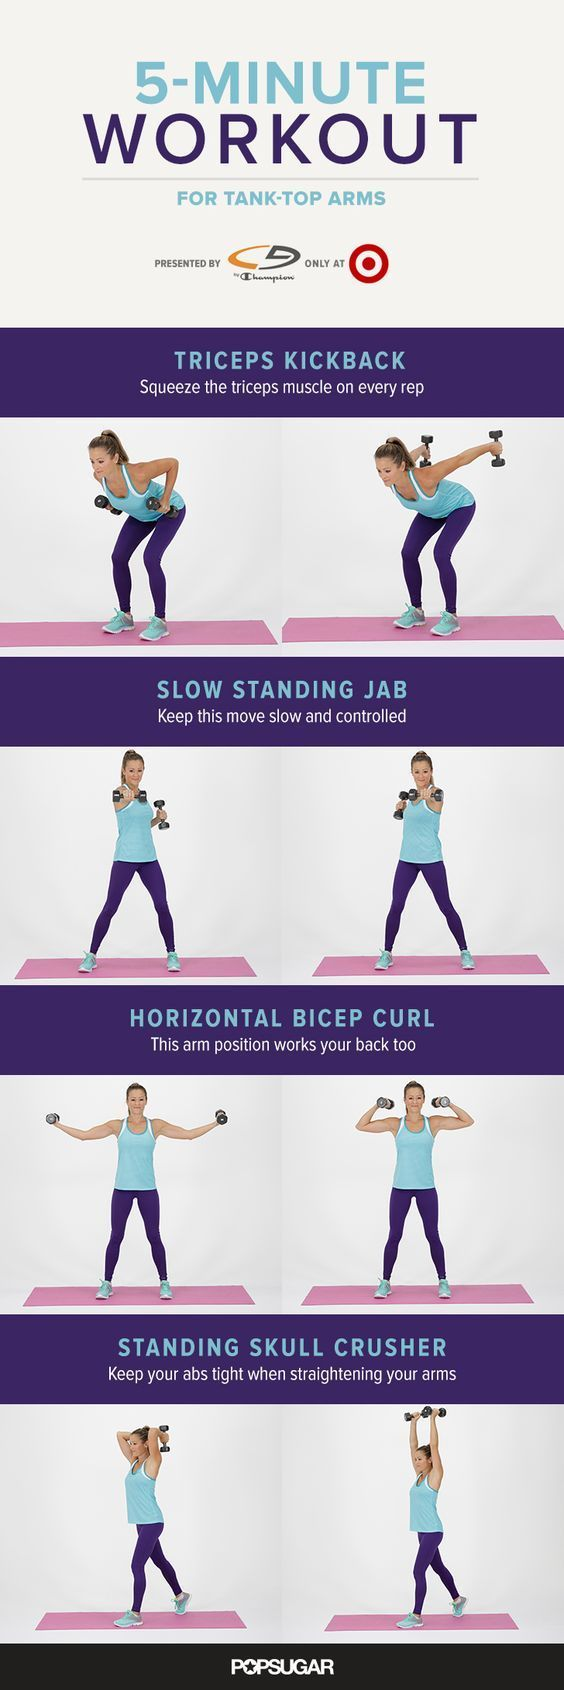 8 Best Workouts To Do In Under 10 Minutes. Short workouts are perfect for when you're new to working out or when you're just feeling lazy. It's better to take baby steps than no steps at all. Plus, it takes 21 days to form a new habit. These workouts focus on every major problem area so you can alternate between them however you want. - Tap the pin if you love super heroes too! Cause guess what? you will LOVE these super hero fitness shirts!